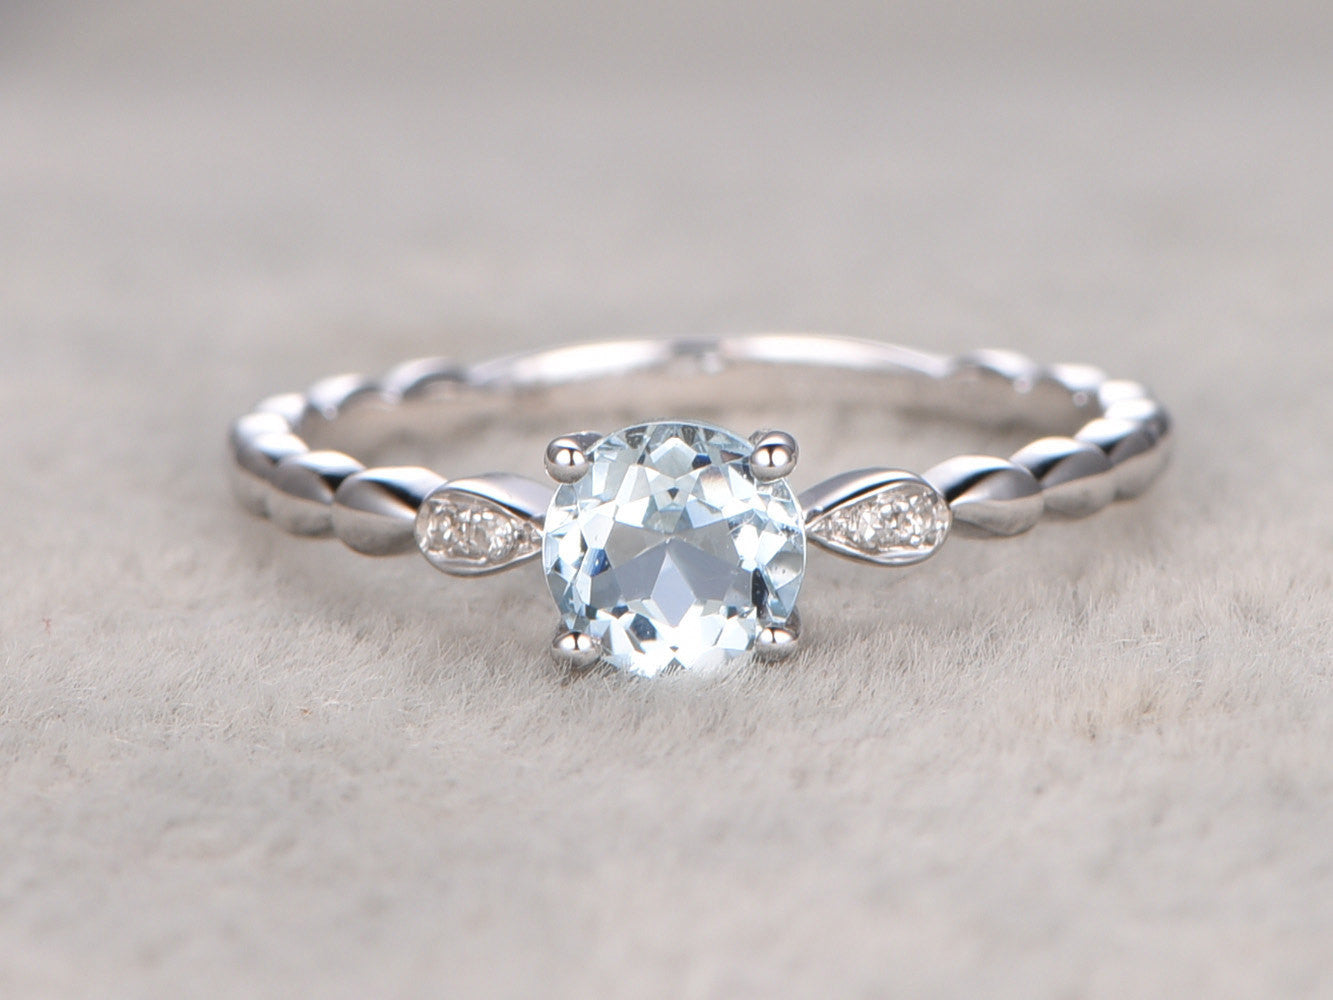 6mm 0.55ctw Round Aquamarine Engagement ring,SI Diamond wedding band,Gemstone Promise Ring,Bridal Ring,VVS Blue Aquamarine